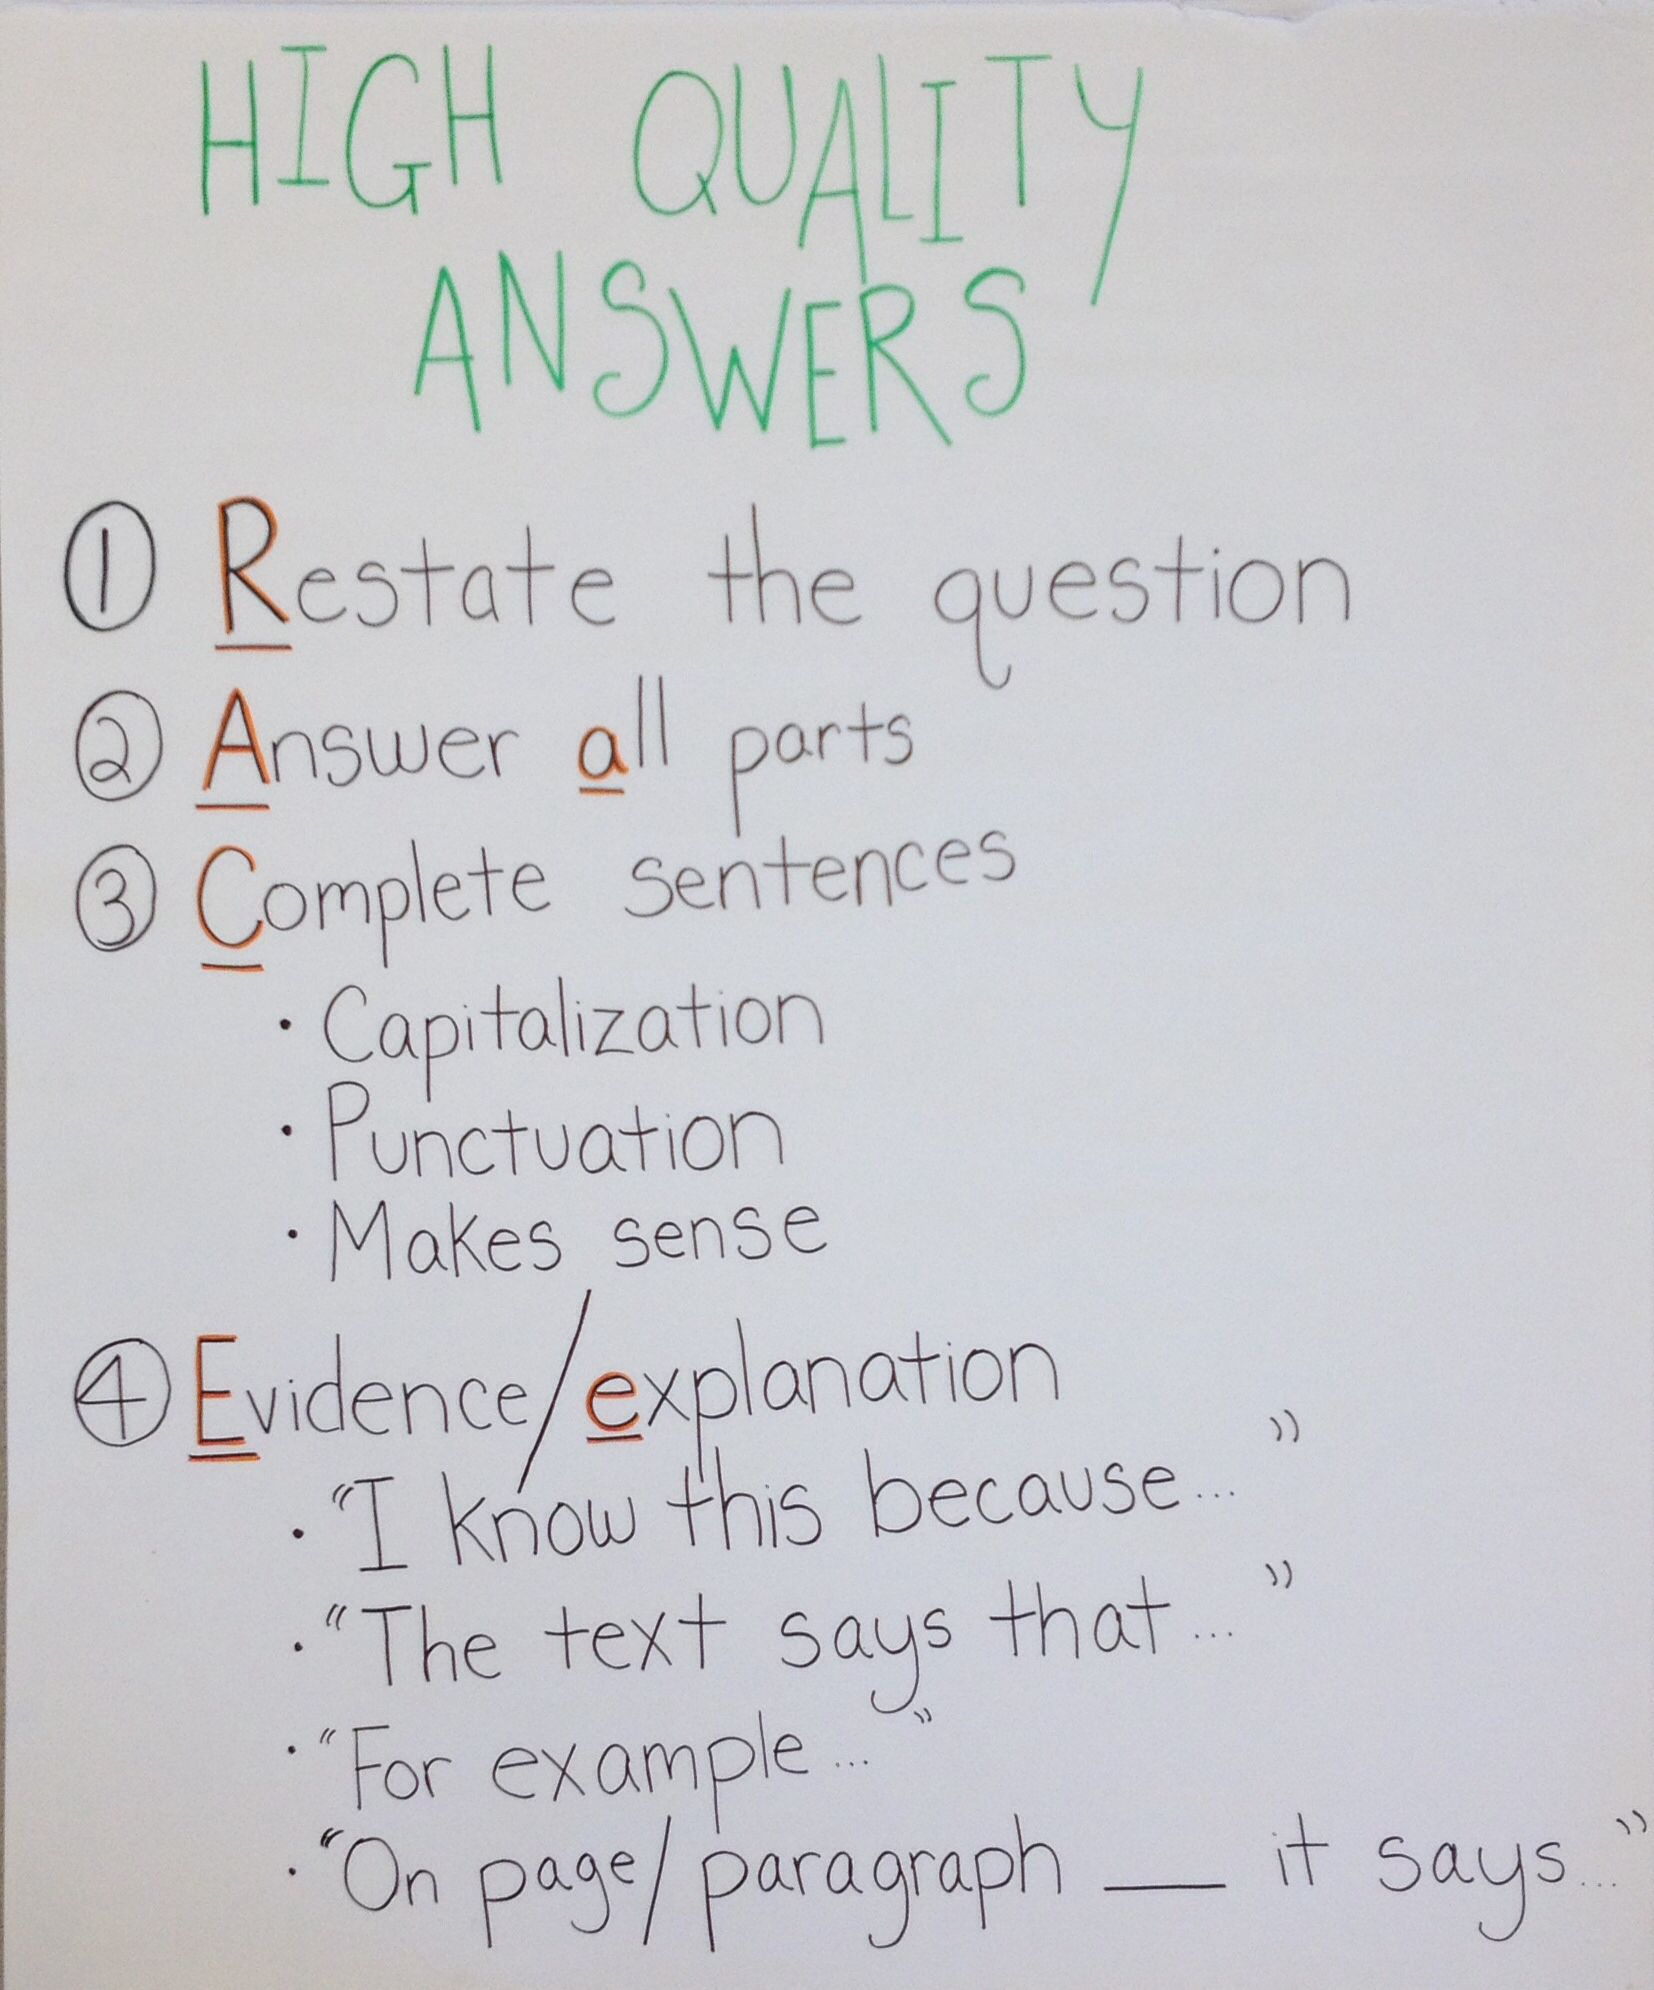 High Quality Answers Anchor Chart Race Restate Answer Complete Sentences Evidence